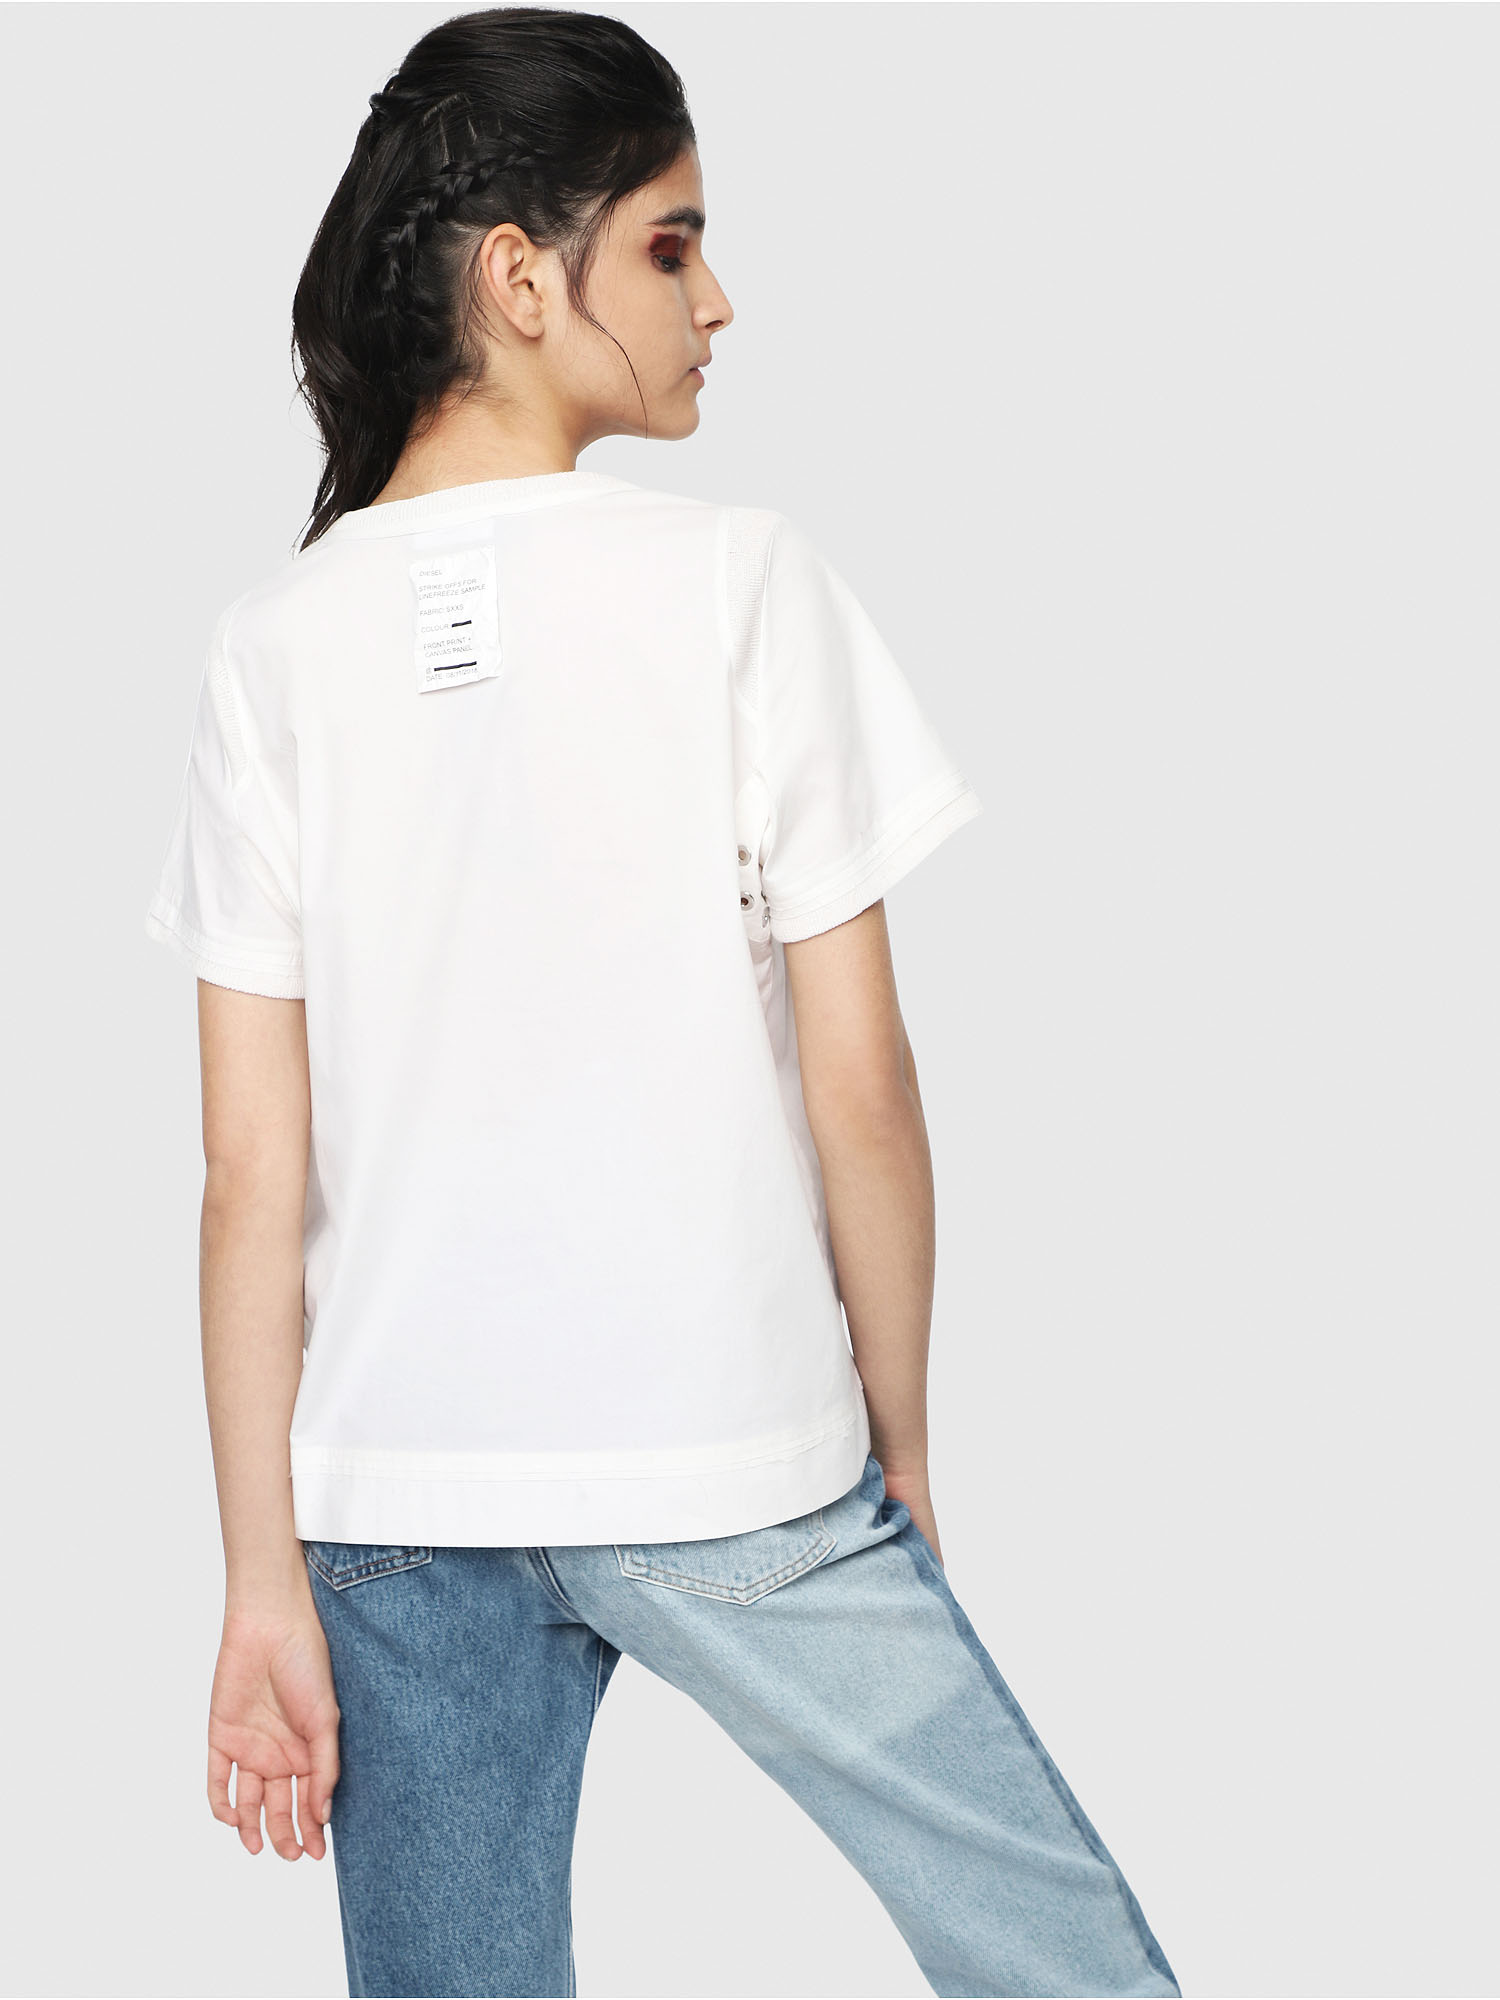 Diesel - T-SELLY,  - T-Shirts - Image 2